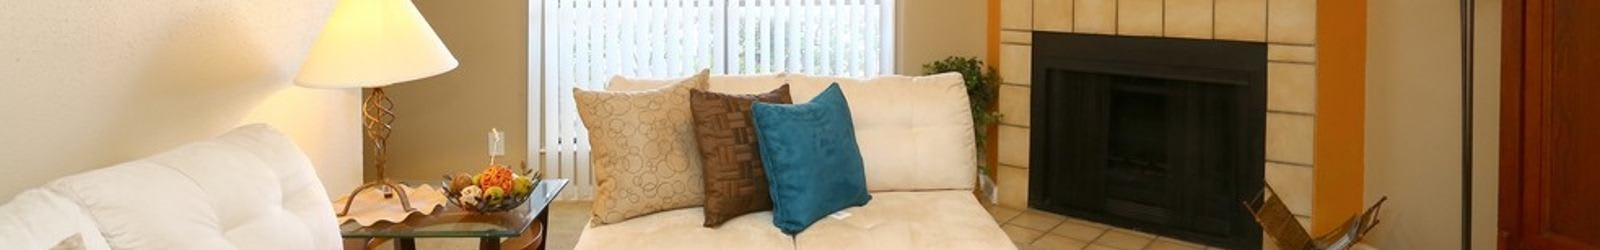 Contact Biltmore Park Apartments about luxury apartment community living in San Antonio, TX